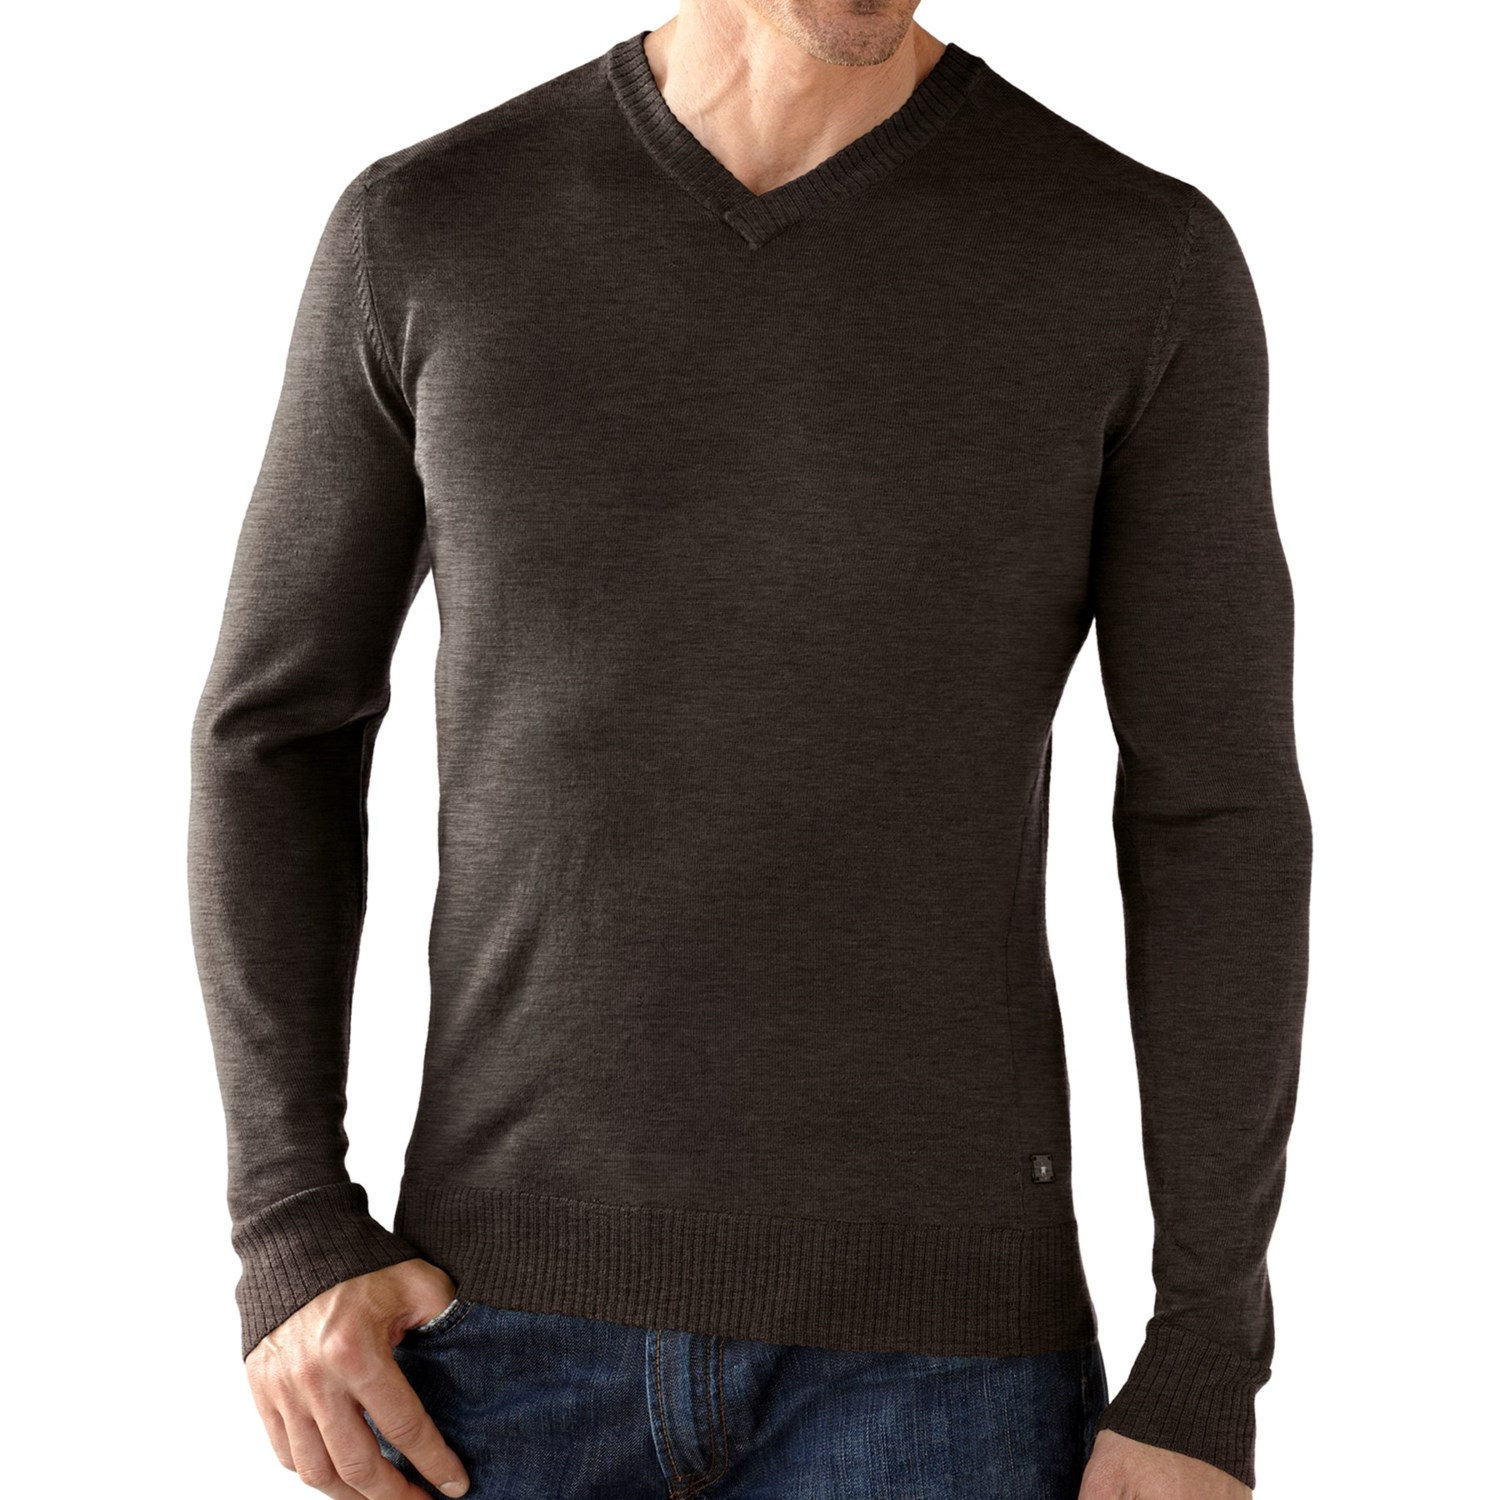 Or for a cooler-weather option, turn to our long-sleeve tees (which are totally ready for layering). Pair any of these cotton crew neck shirts with jeans or khakis to complete the look with our men.